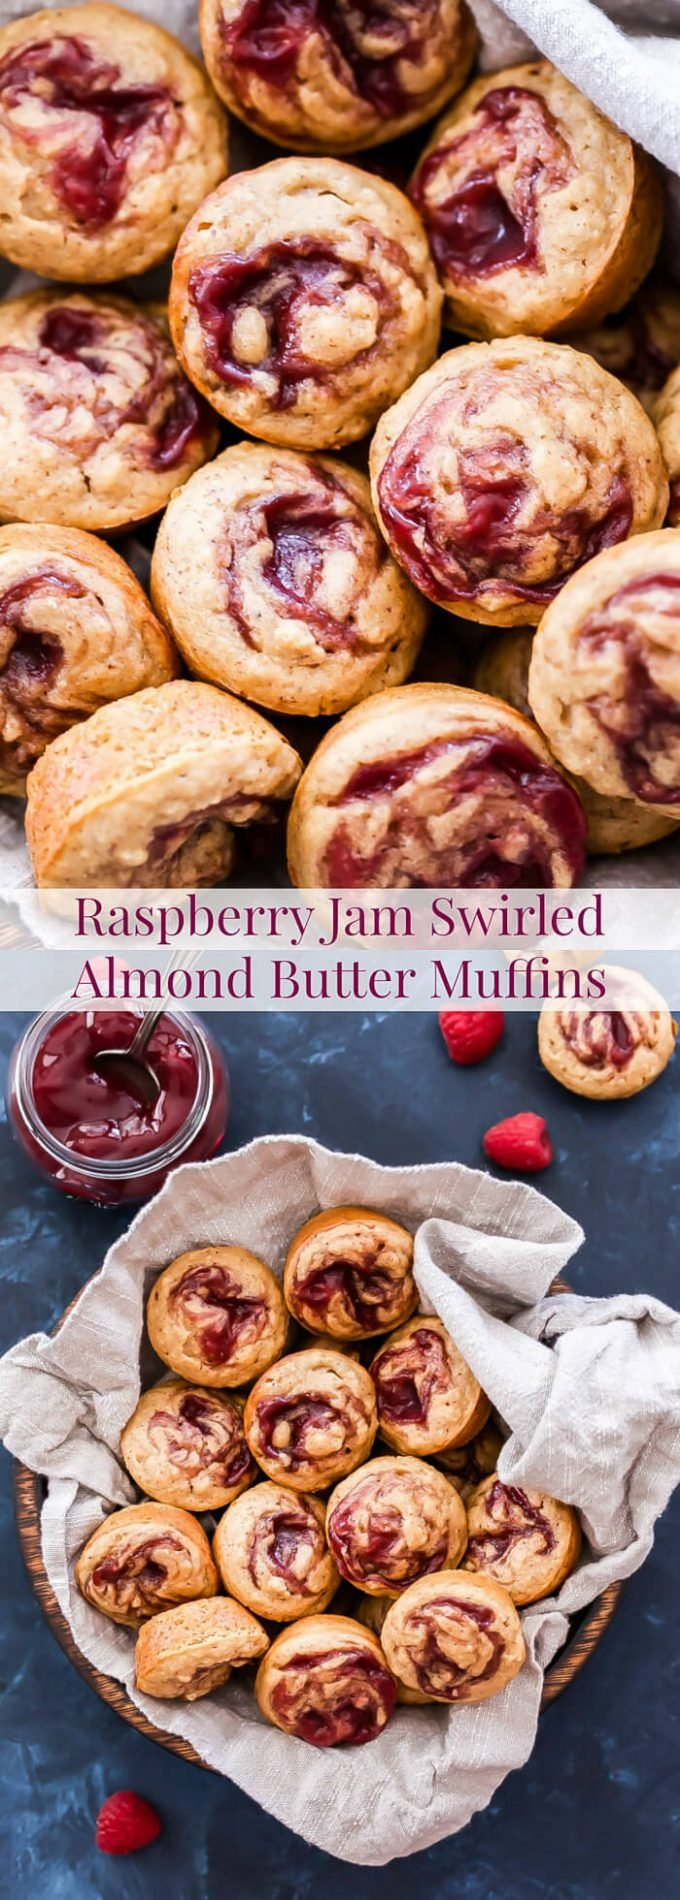 These Raspberry Jam Swirled Almond Butter Muffins are perfect for breakfast, brunch or an afternoon snack. 100% whole wheat, vegan and absolutely delicious, it's hard to only eat one!